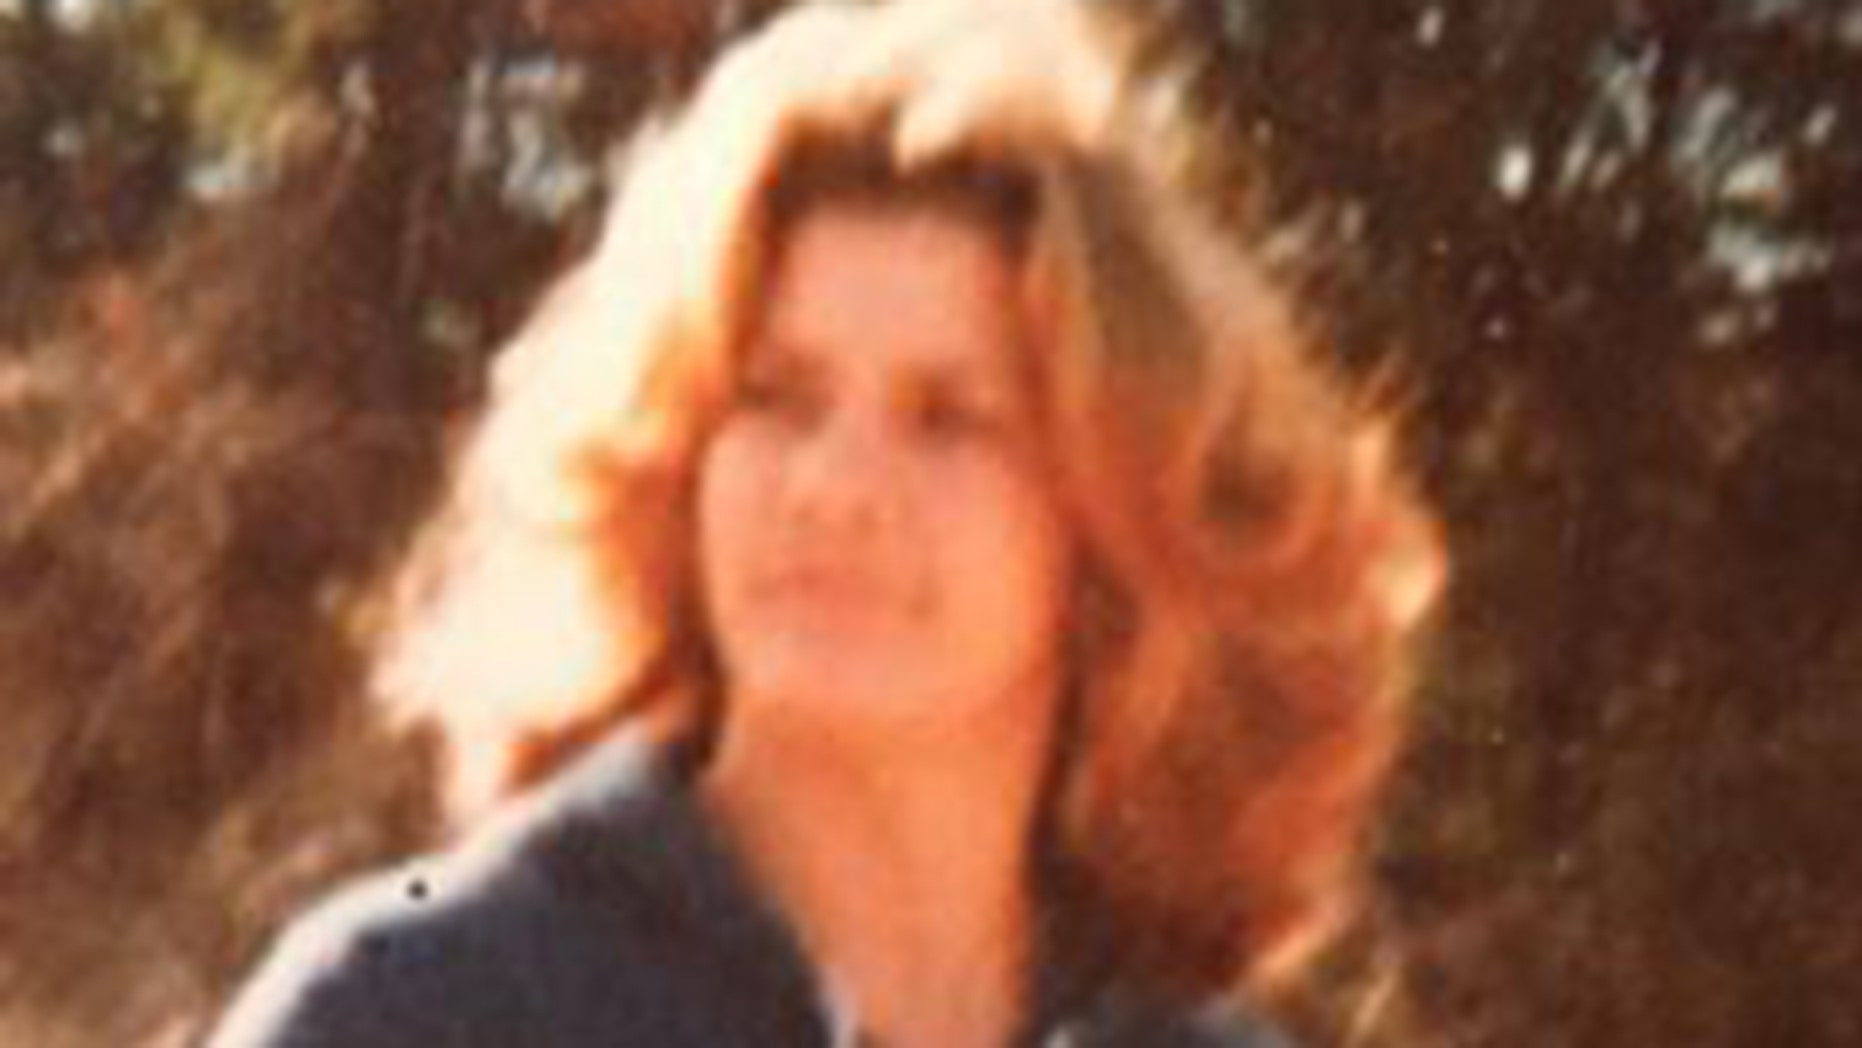 Denise Ann Daneault was 25 went she went missing in Manchester, N.H. in 1980.